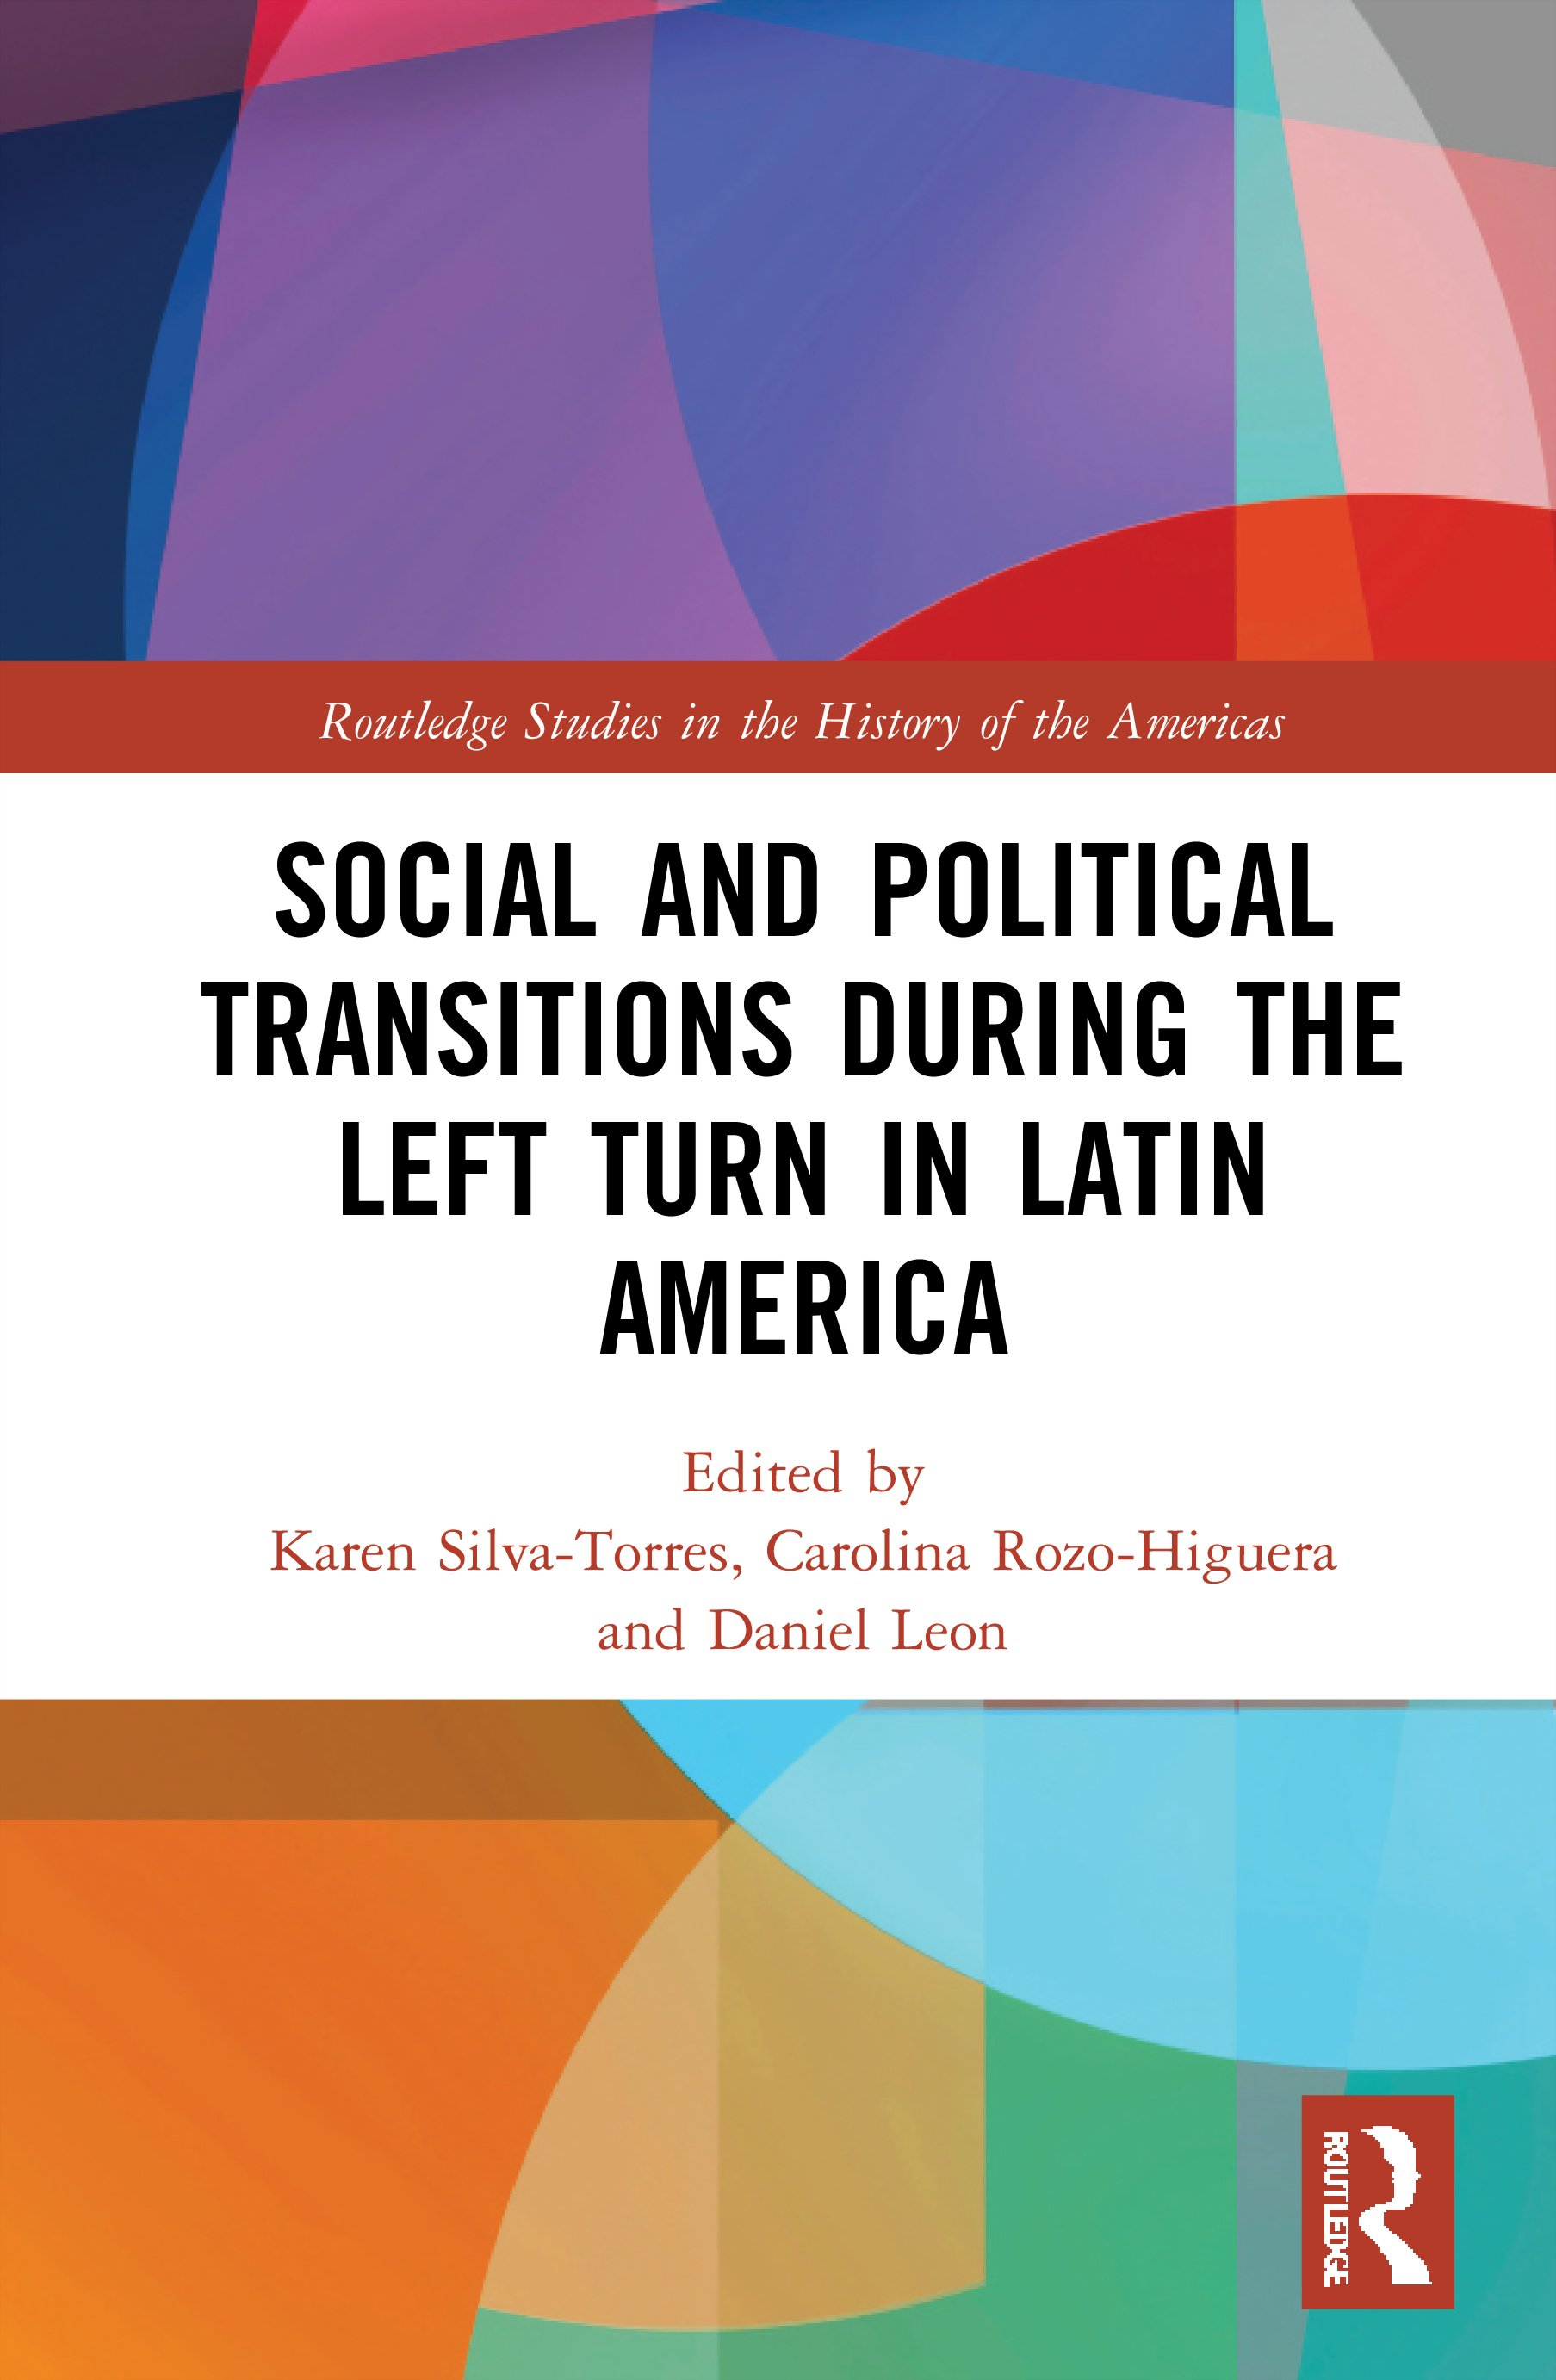 Social and Political Transitions During the Left Turn in Latin America